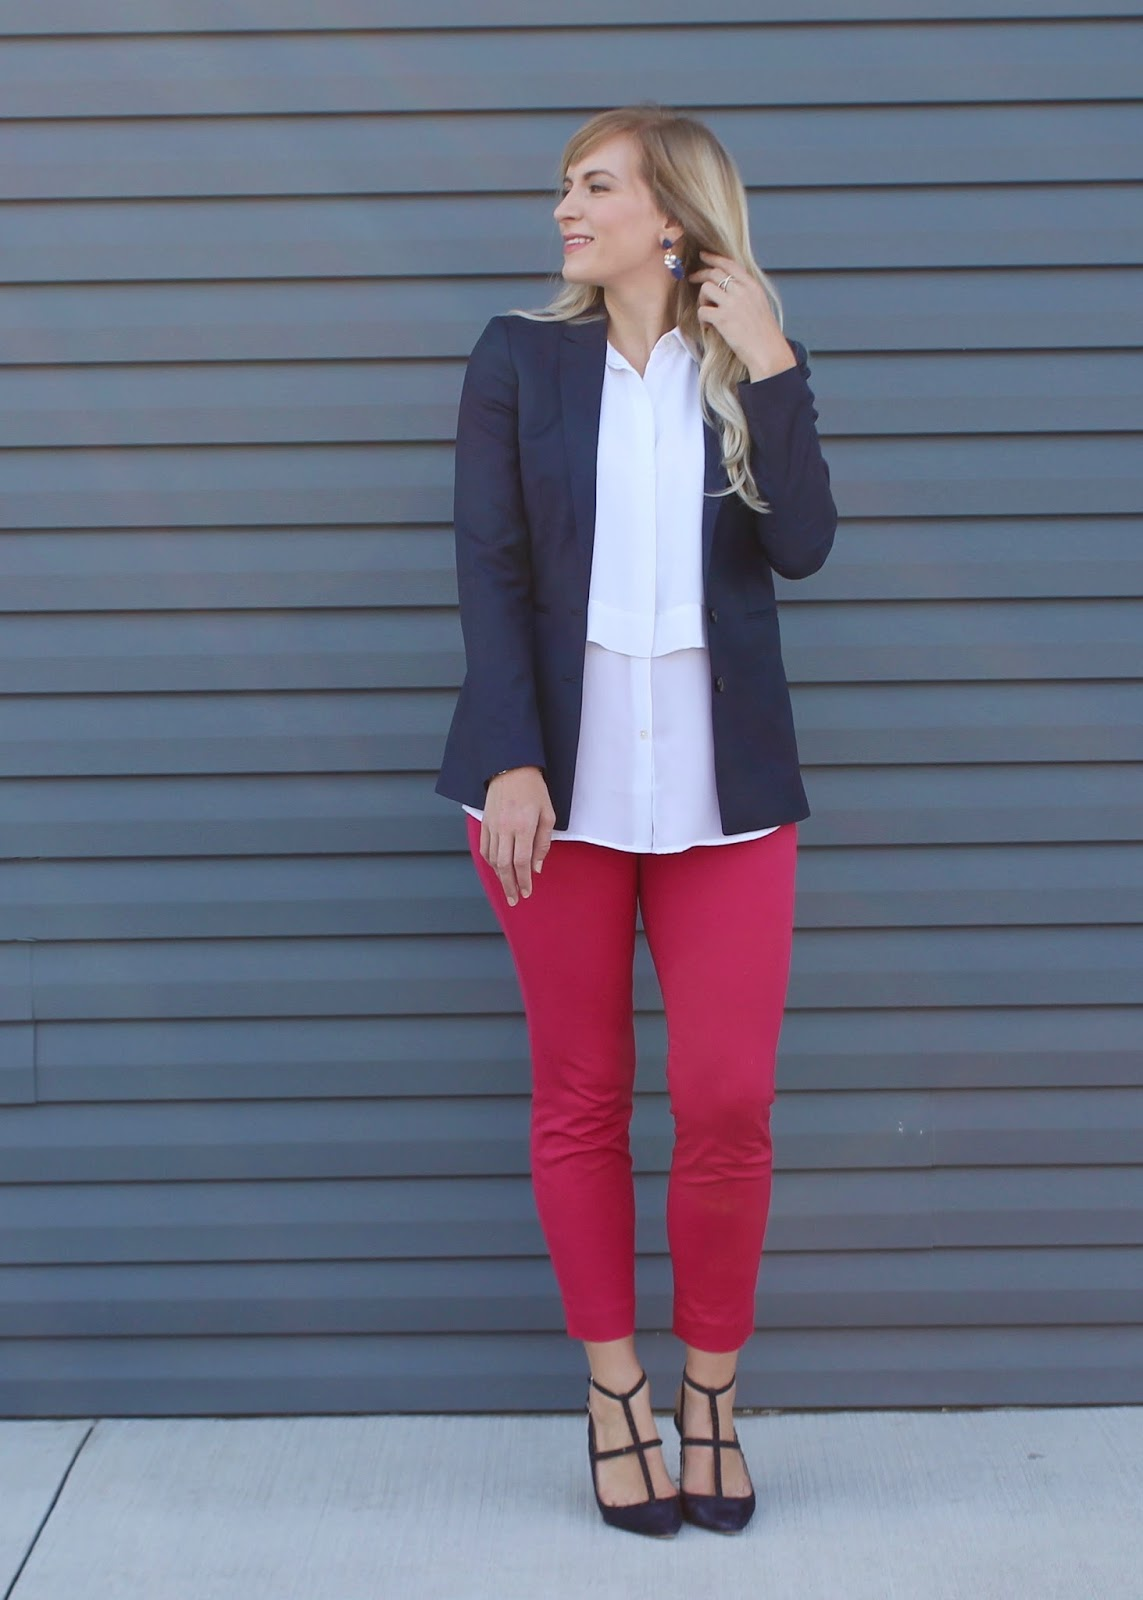 navy blazer and pink pants